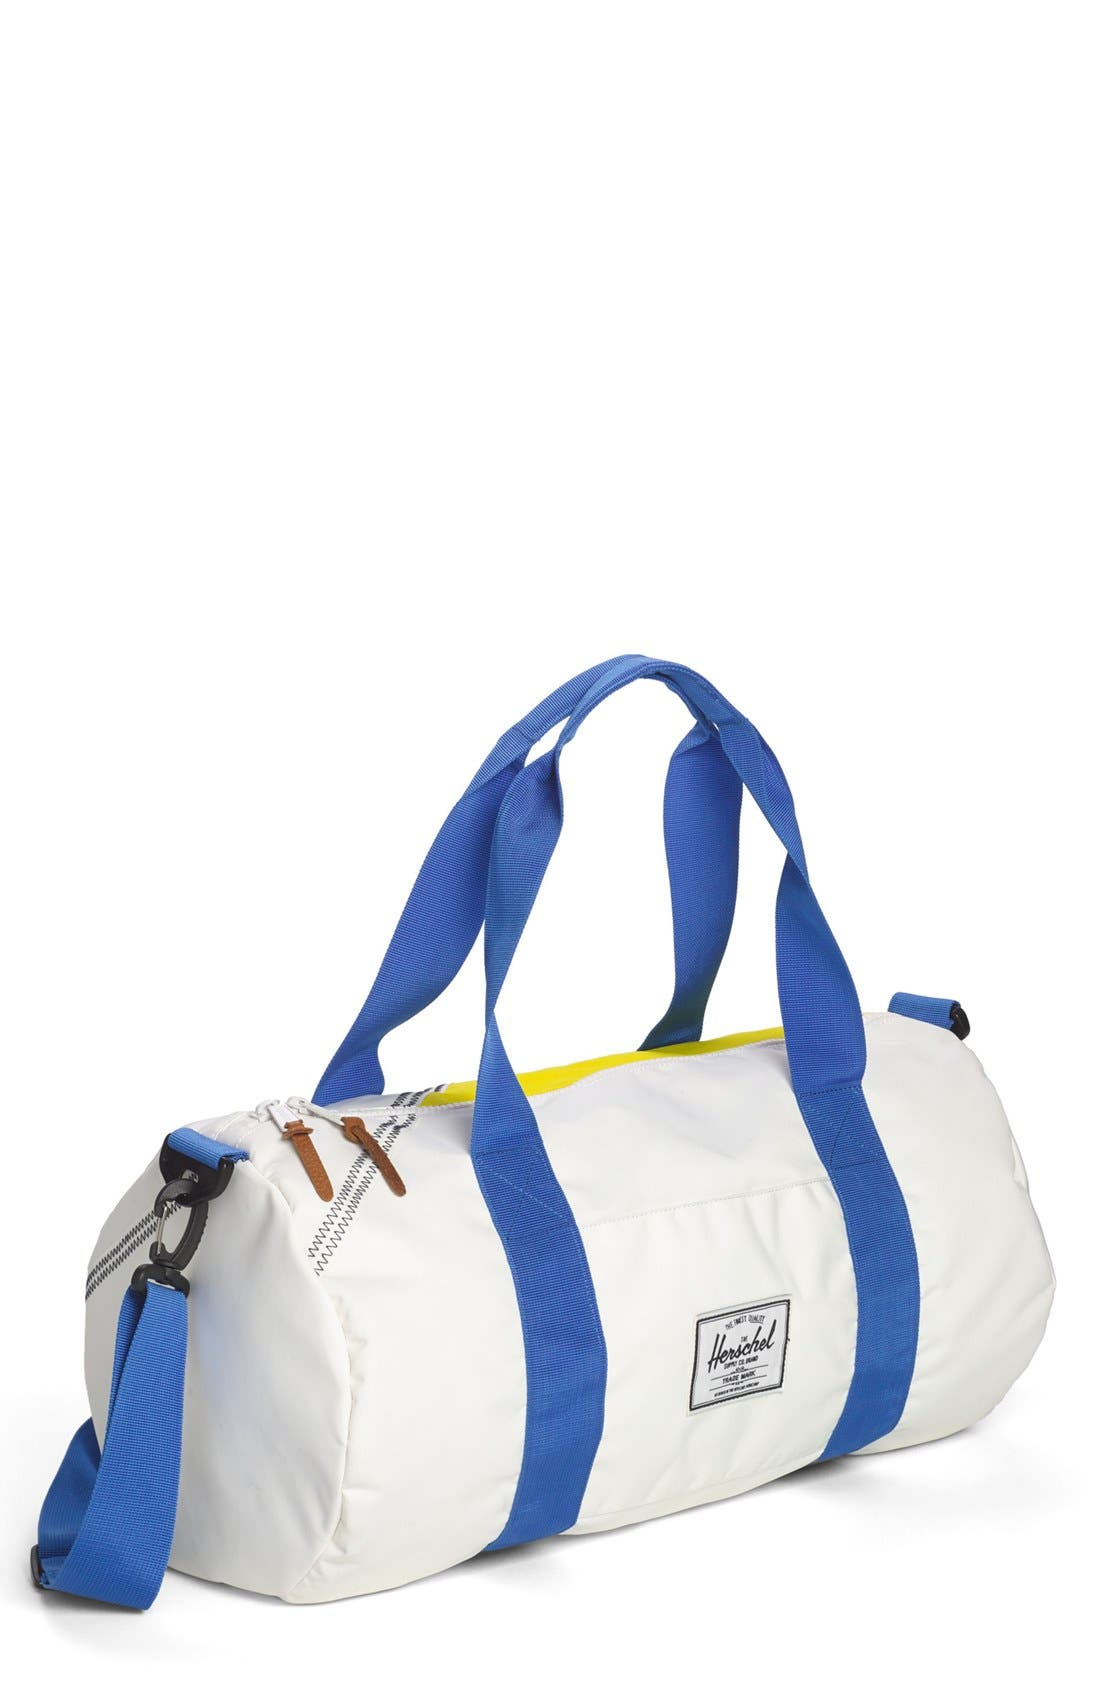 Alternate Image 1 Selected - Herschel Supply Co. 'Sutton - Studio Collection' Mid Size Duffel Bag